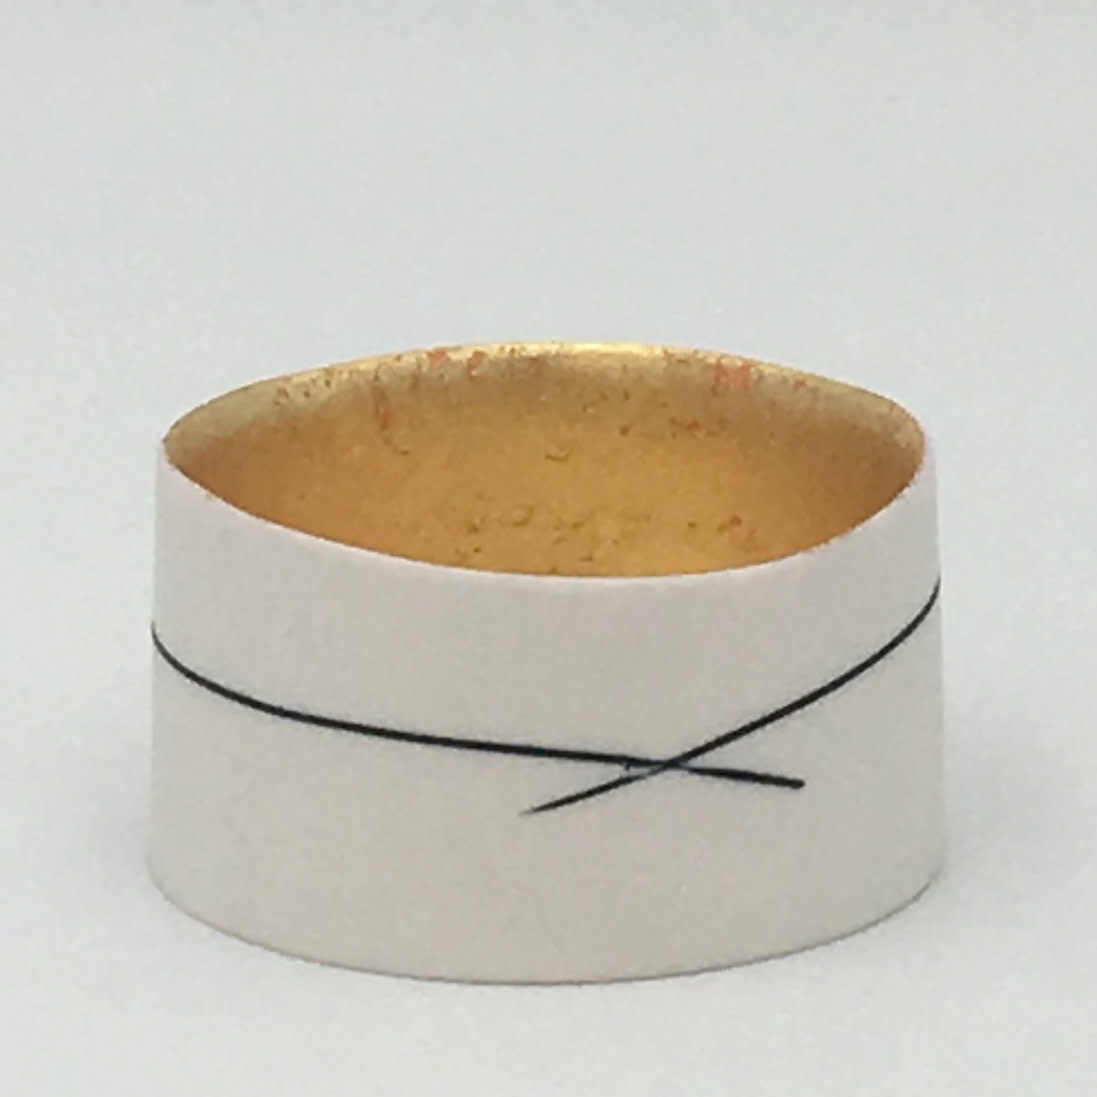 "<span class=""link fancybox-details-link""><a href=""/artists/195-lara-scobie/works/6519-lara-scobie-small-23ct-gold-bowl-2019/"">View Detail Page</a></span><div class=""artist""><strong>Lara Scobie</strong></div> <div class=""title""><em>Small 23ct Gold Bowl</em>, 2019</div> <div class=""medium"">Porcelain</div>"